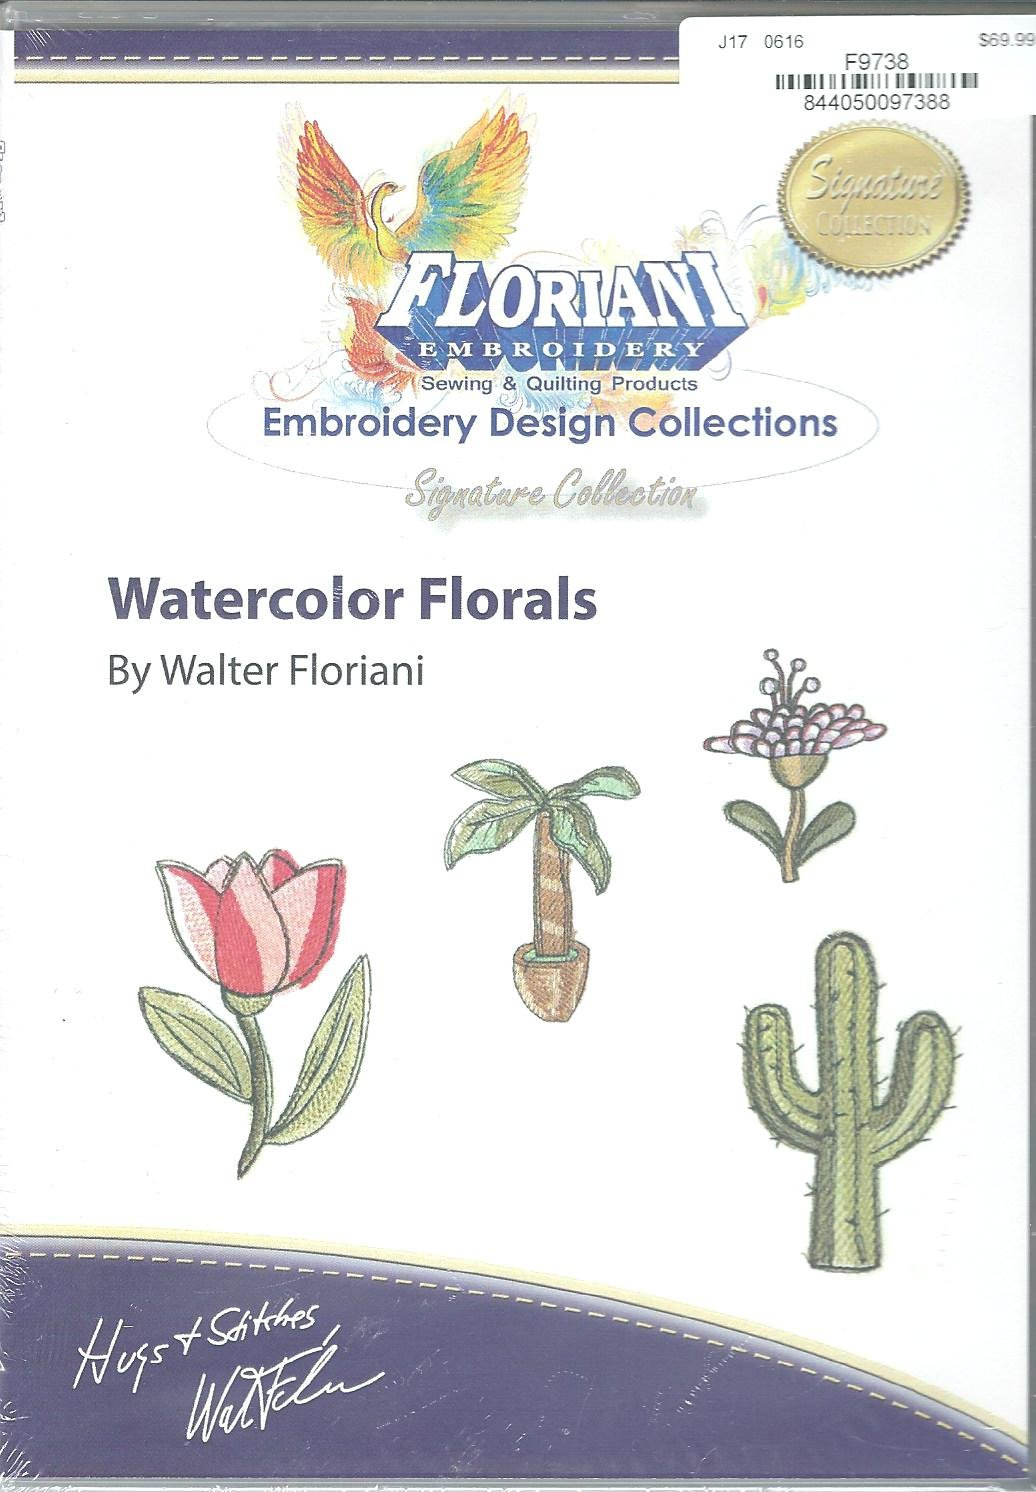 Floriani Embroidery Design Collection Watercolor Florals